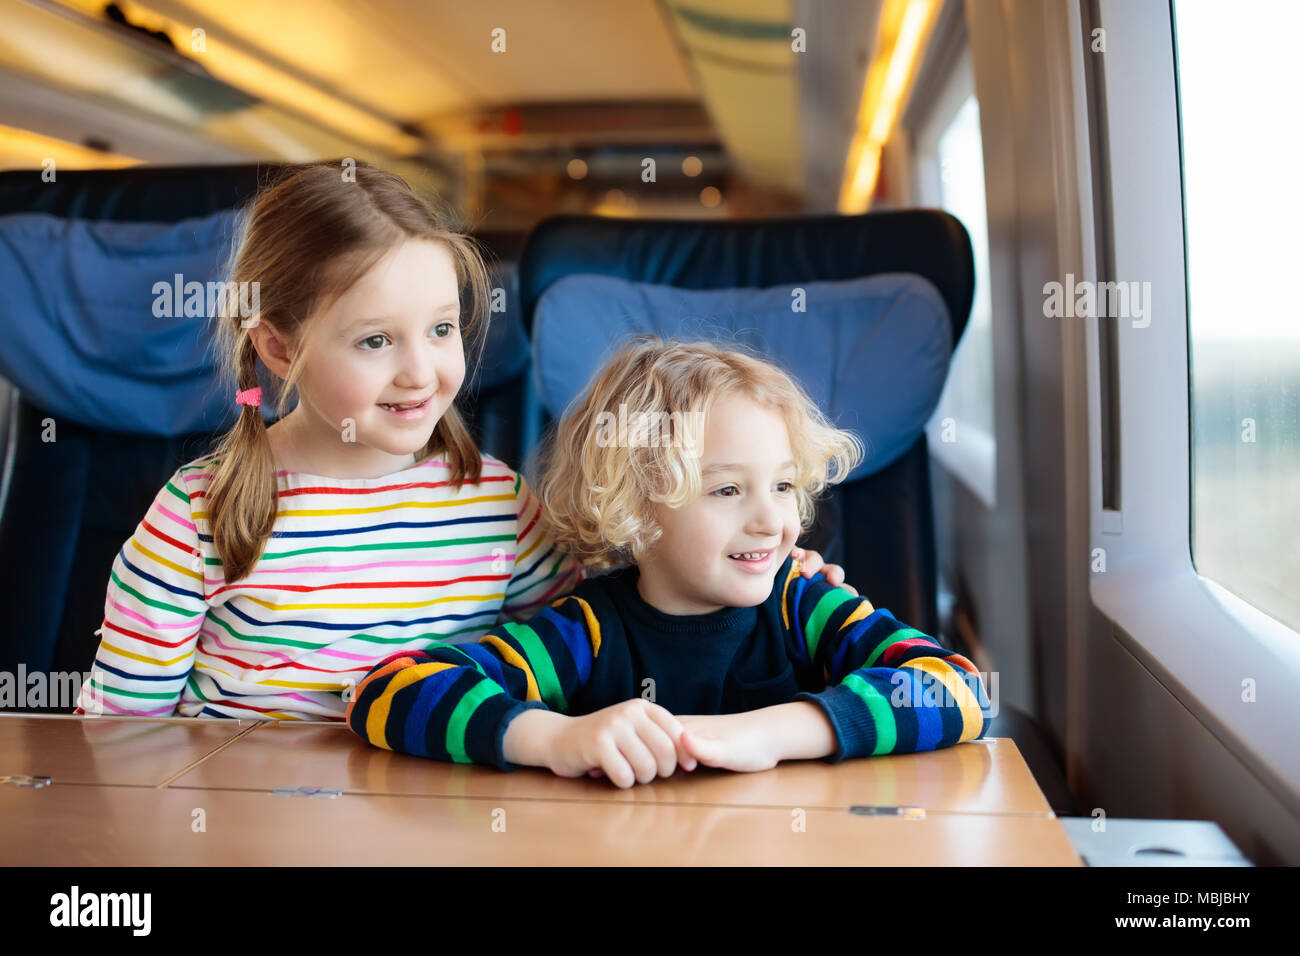 Child Traveling By Train Little Kid In A High Speed Express Train On Family Vacation In Europe Travel By Railway Children In Railroad Car Kids In Stock Photo Alamy